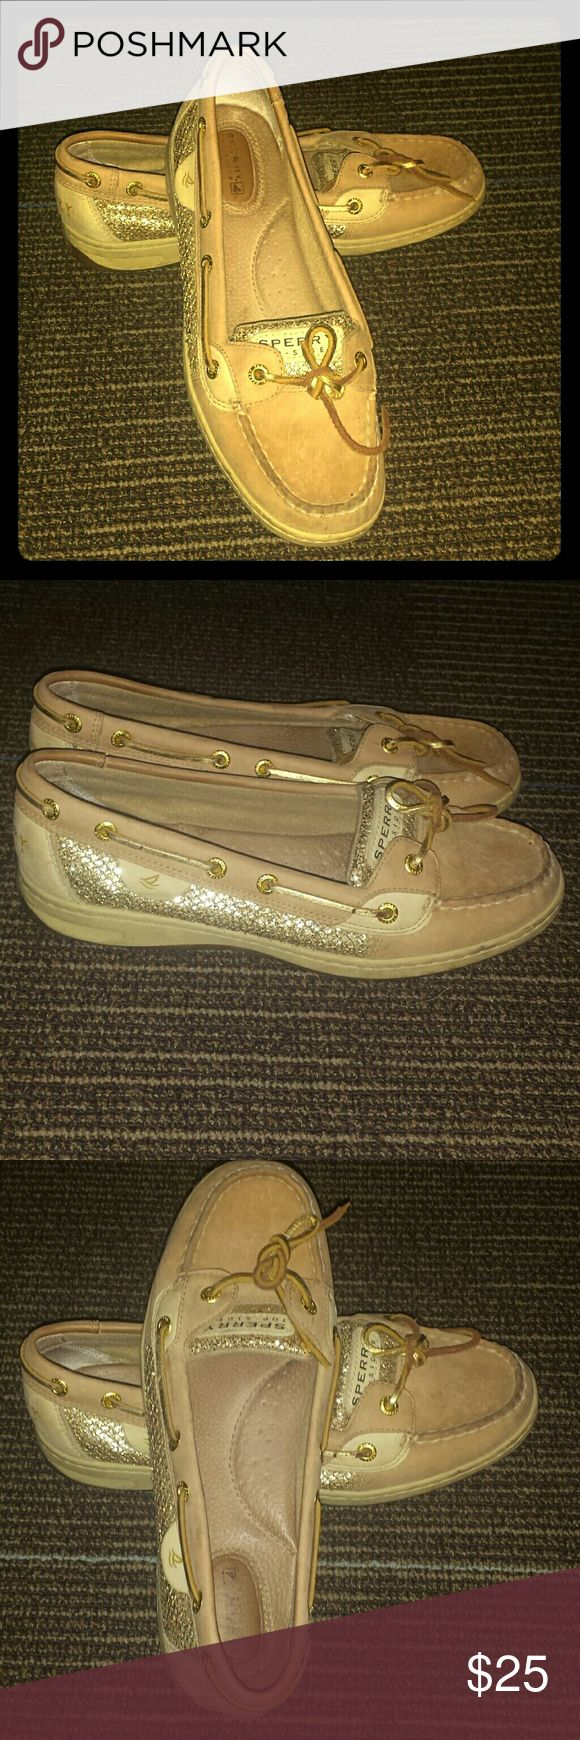 SPERRY ANGELFISH gold loafers Sperry's Angelfish style with sparkle gold netted sides. Very lightly worn. Look brand new. Just not really my style. Size 8.5 Sperry Top-Sider Shoes Flats & Loafers